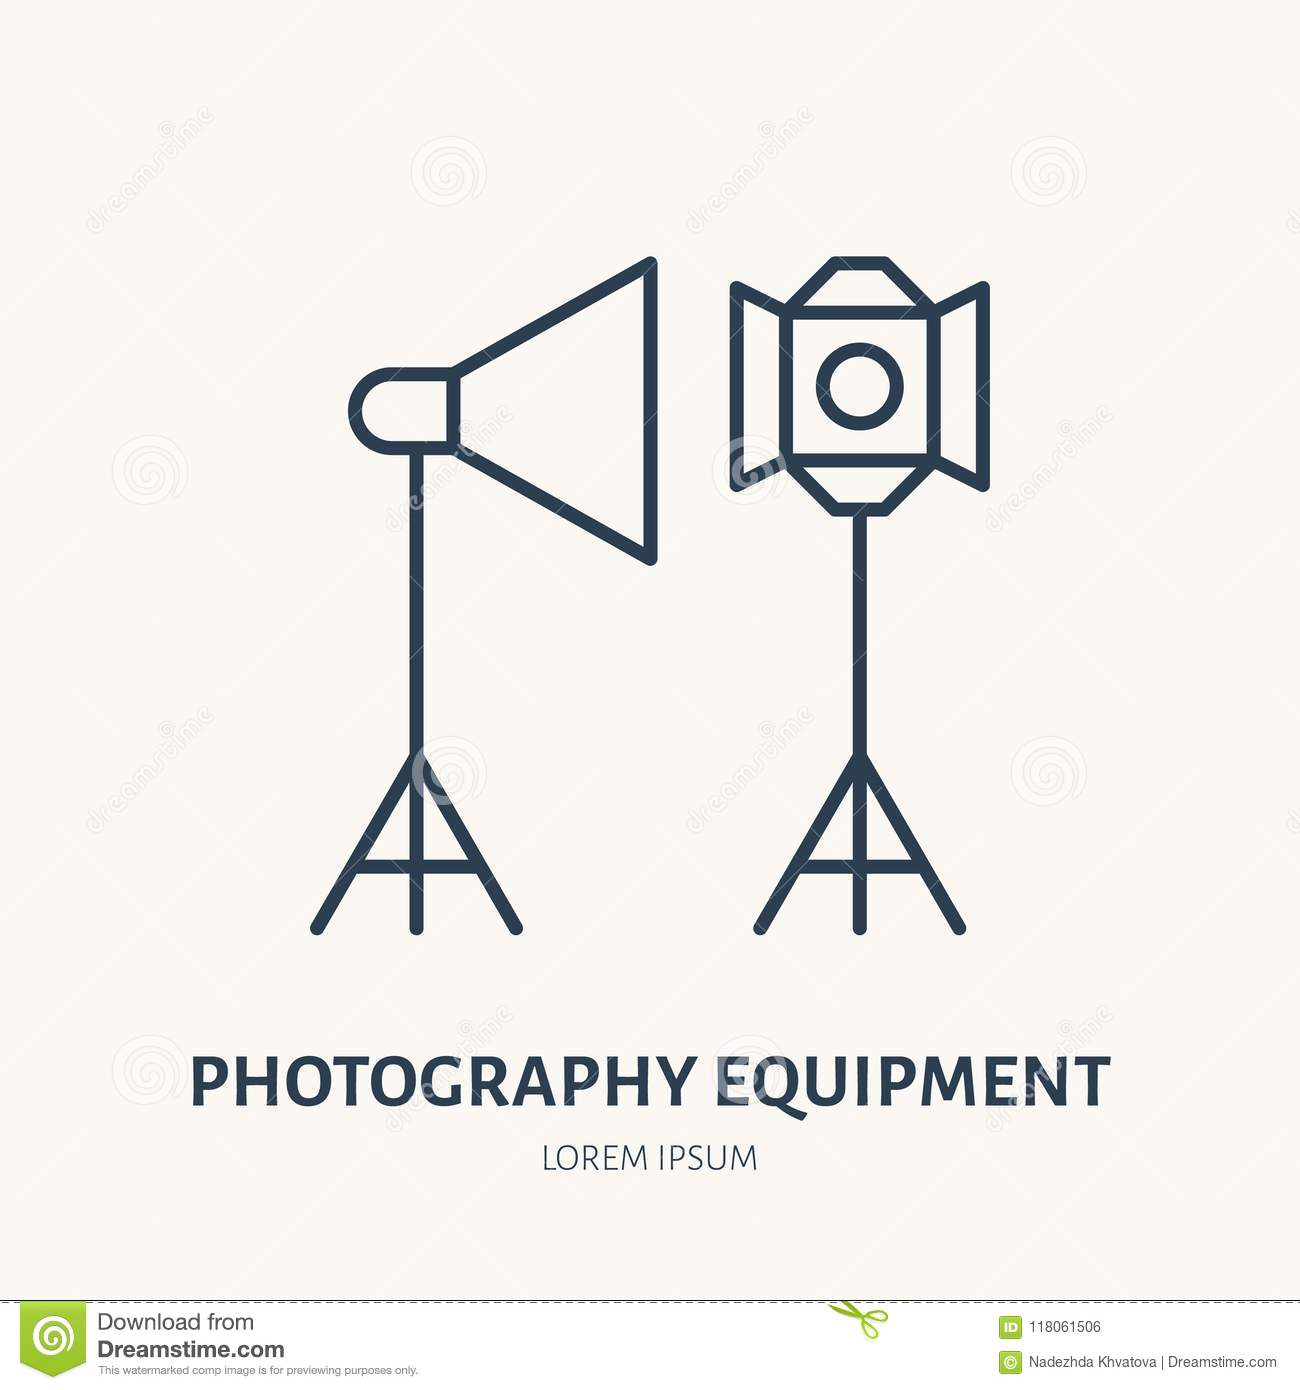 Light Modifiers Flat Line Icon Photography Equipment Sign Thin Lighting Diagram Linear Logo For Photo Studio